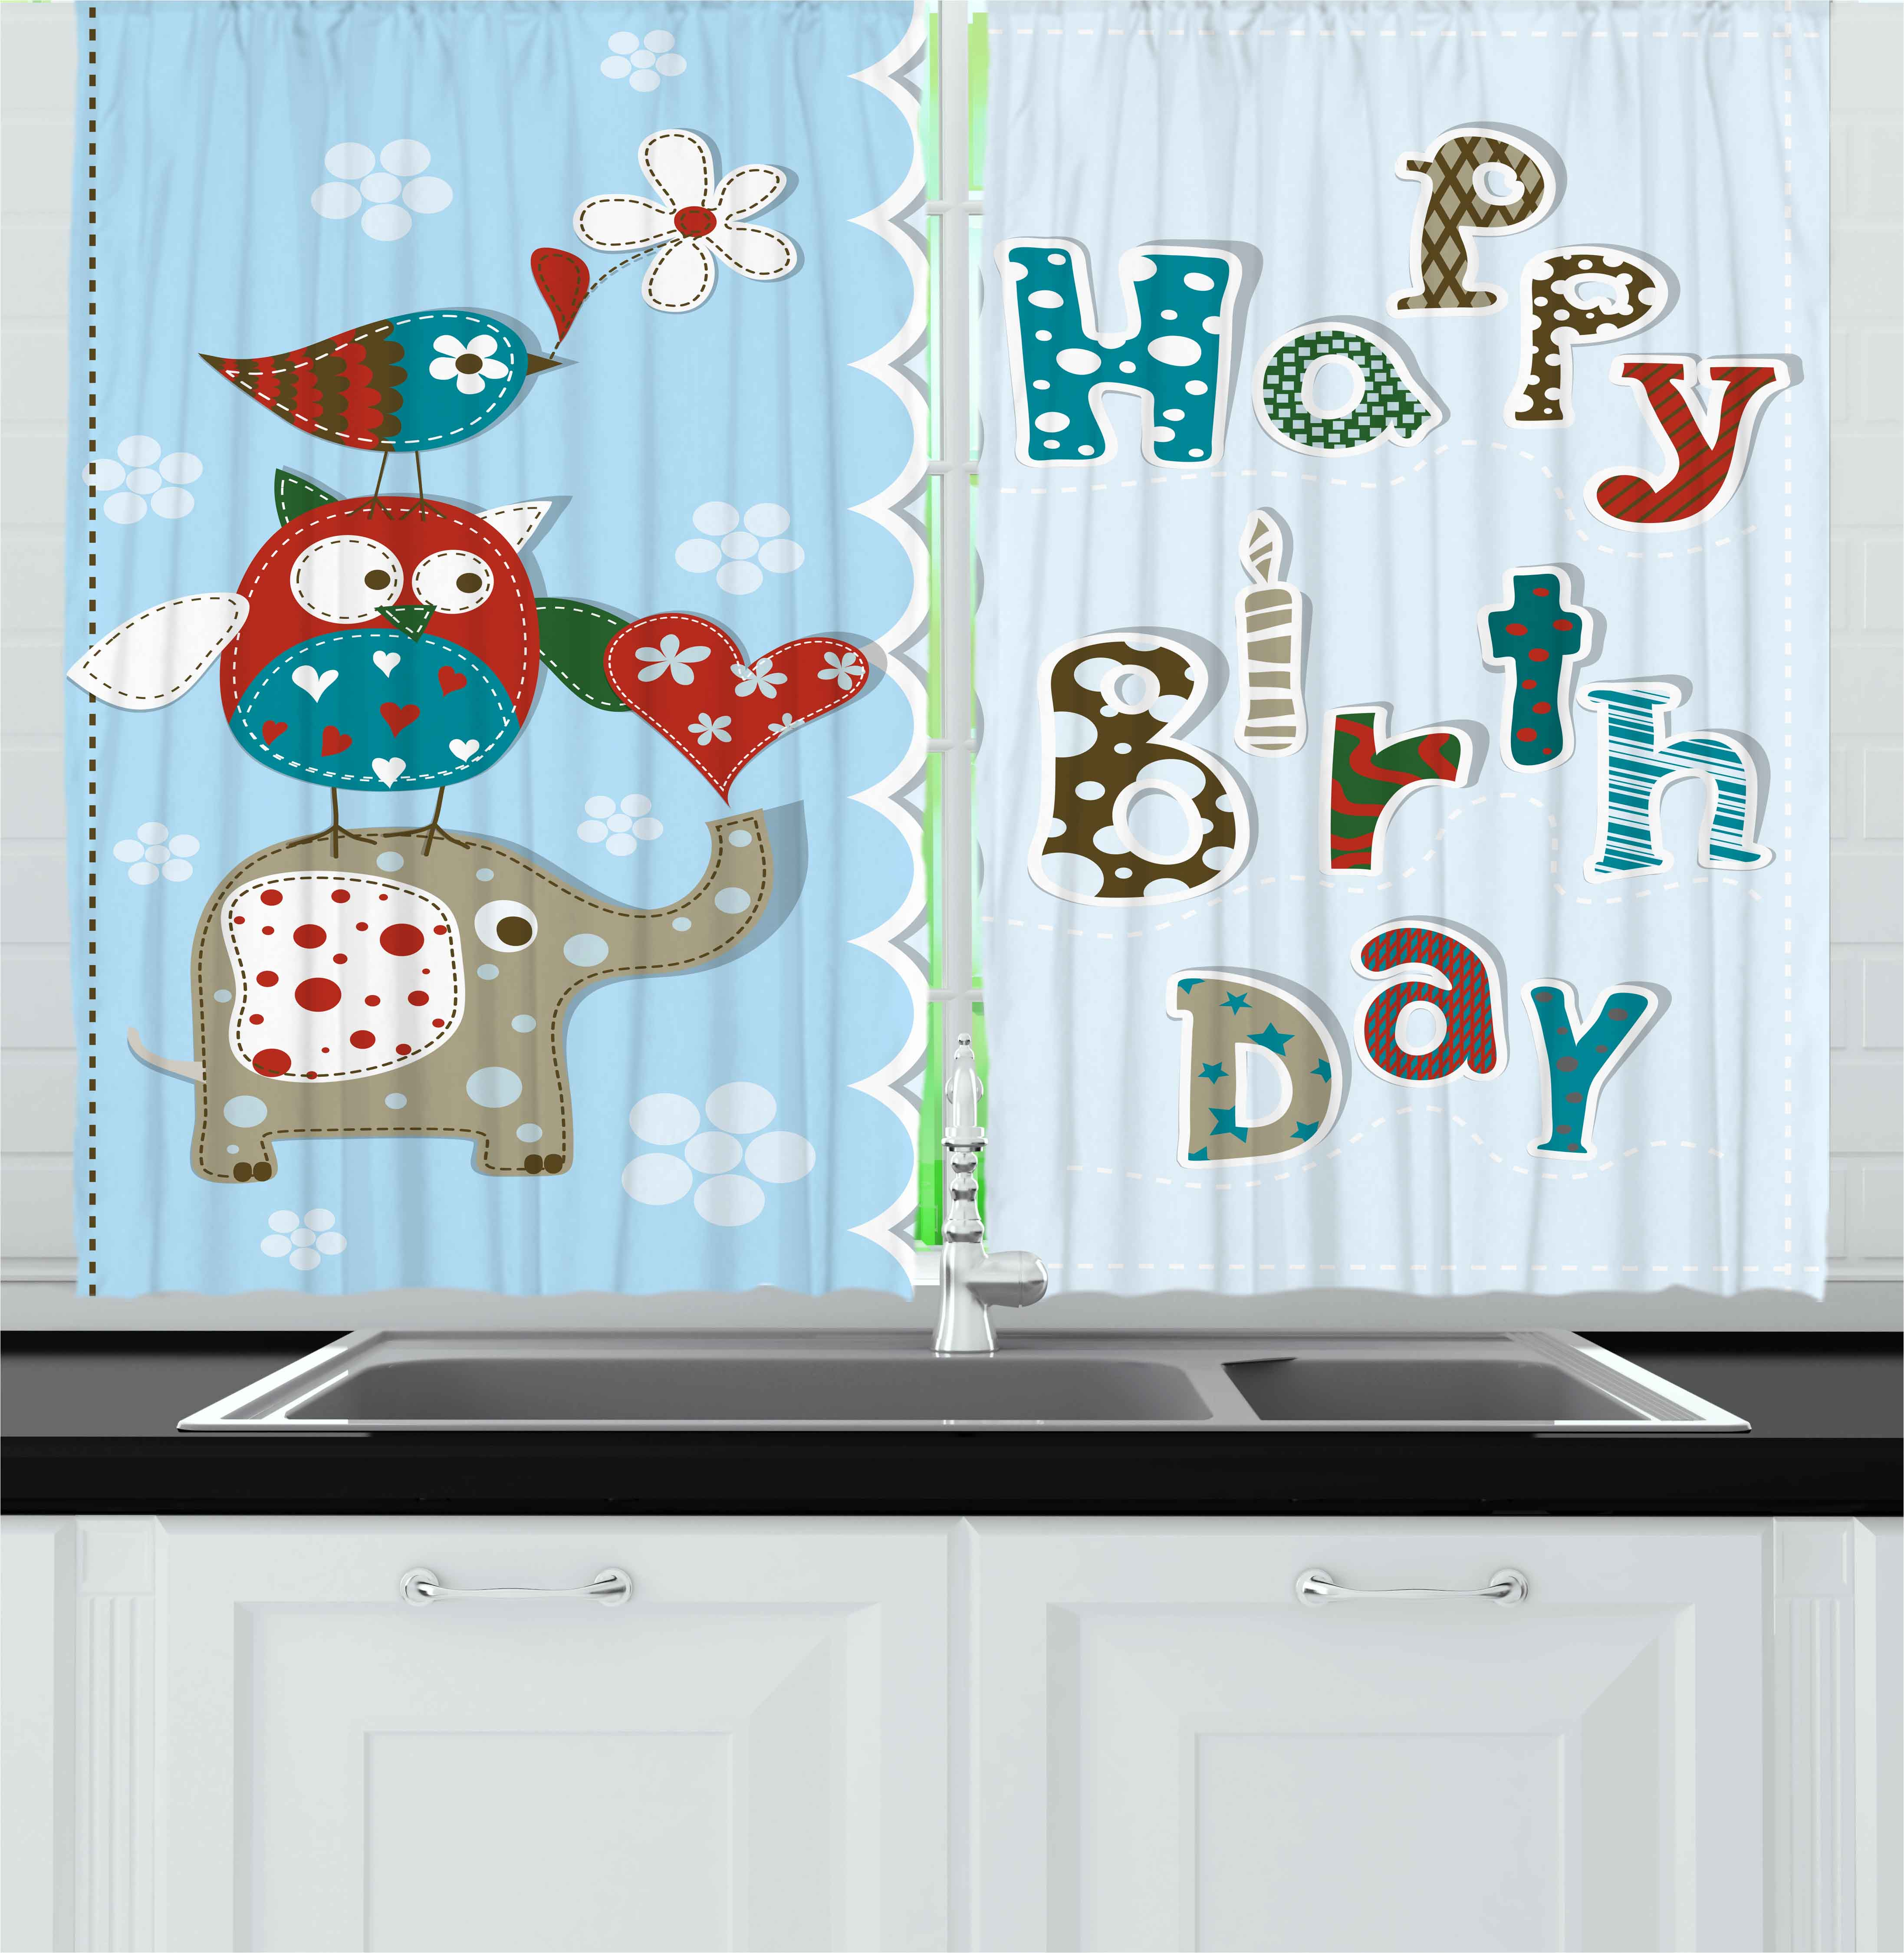 Kids Birthday Curtains 2 Panels Set, Patchwork Inspired Design With Owl  Birds Elephant And Flowers, ...